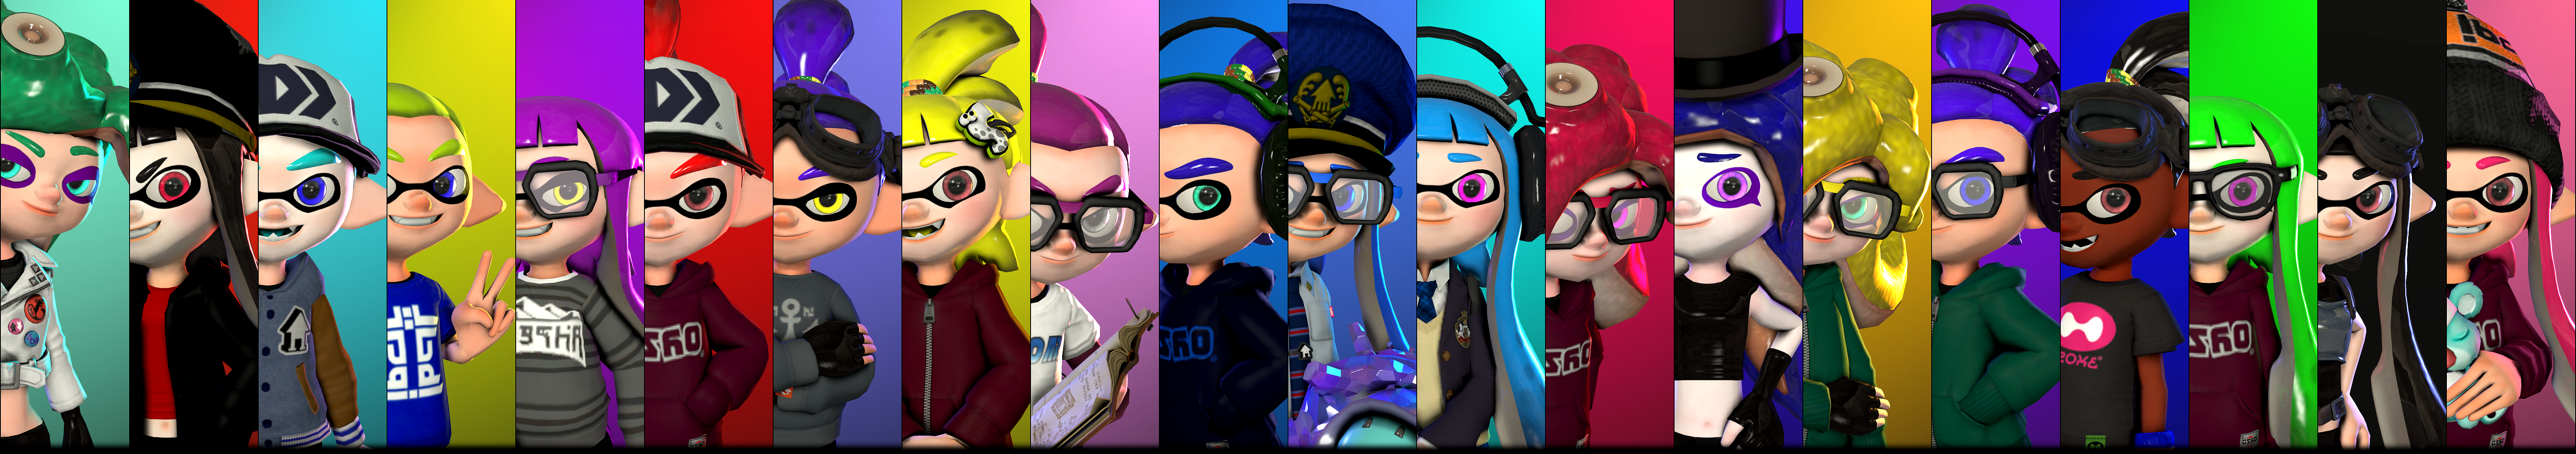 Faces Of Splatoon 2 By Poool157 On Deviantart